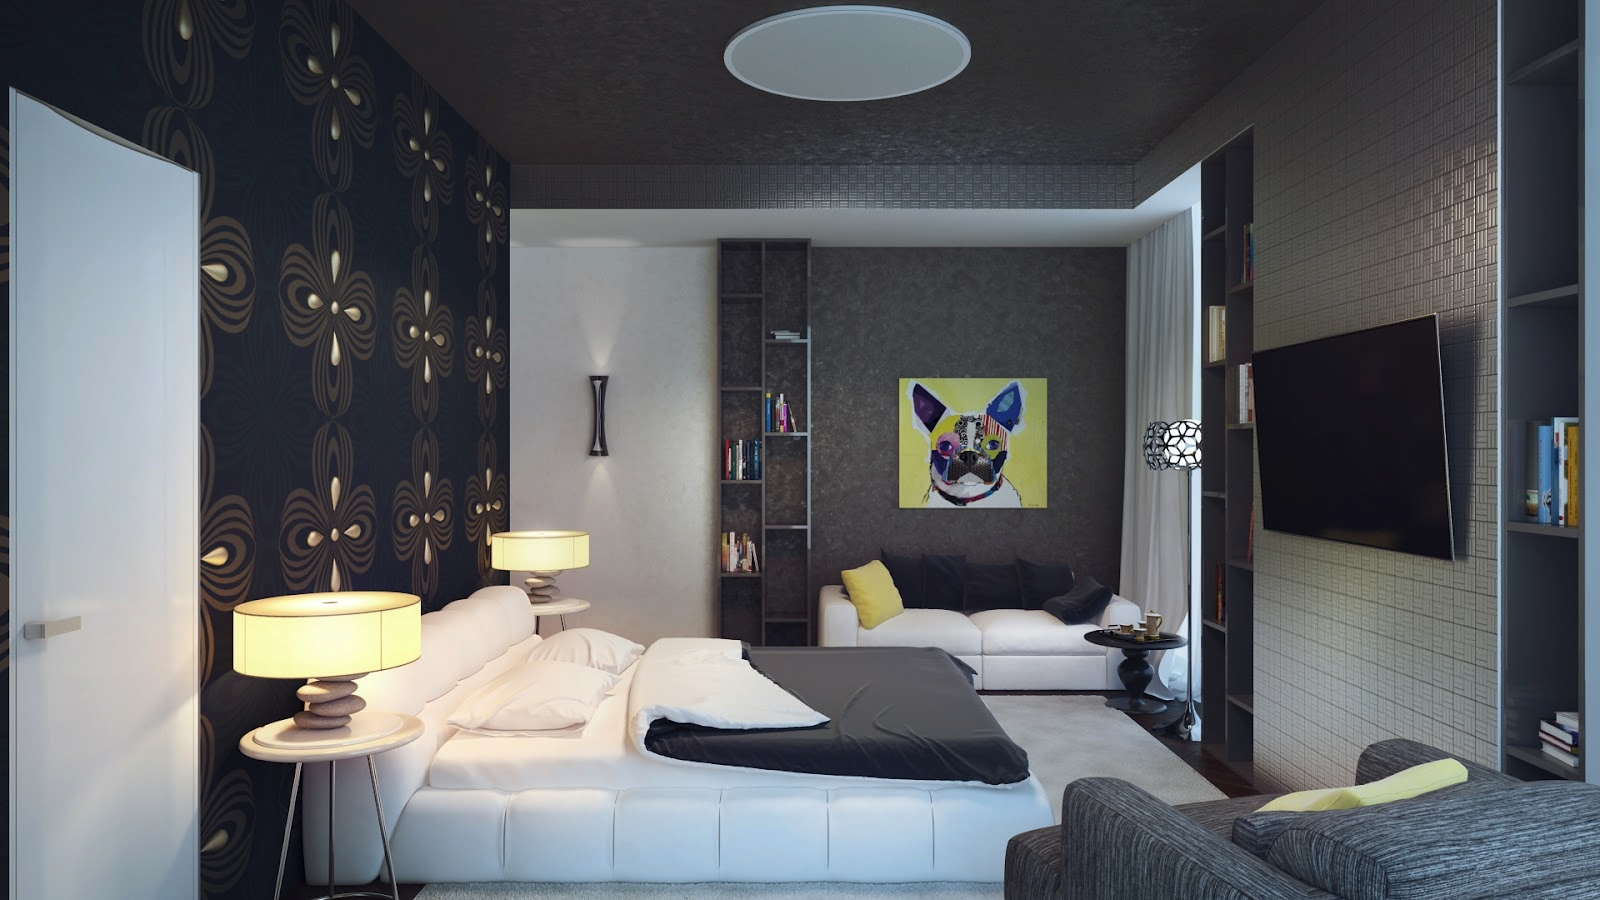 Black white yellow bedroom interior design ideas for Grey feature wallpaper bedroom